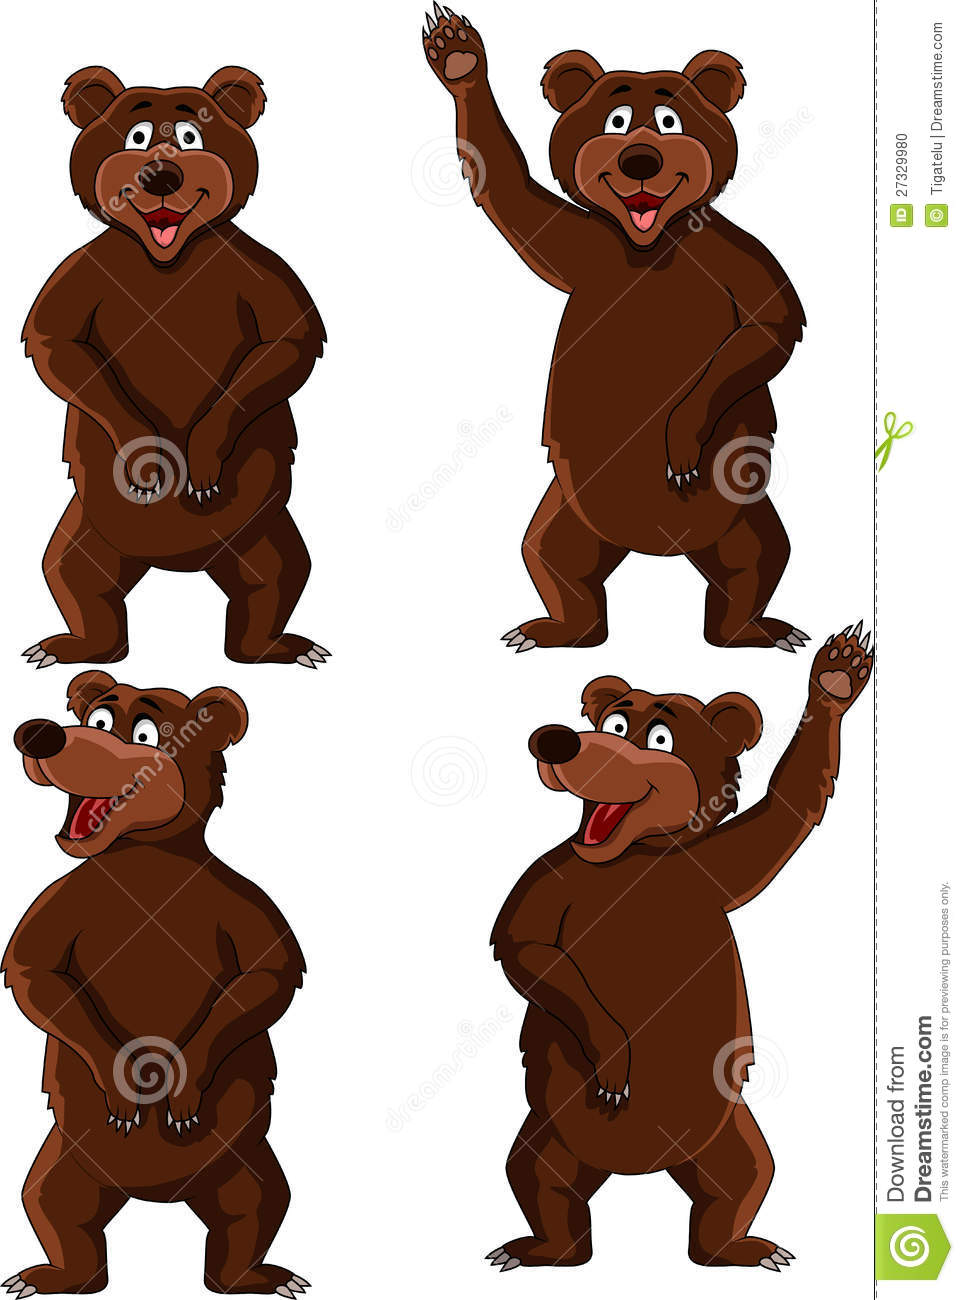 Bear Cartoon Set Stock Photo - Image: 27329980